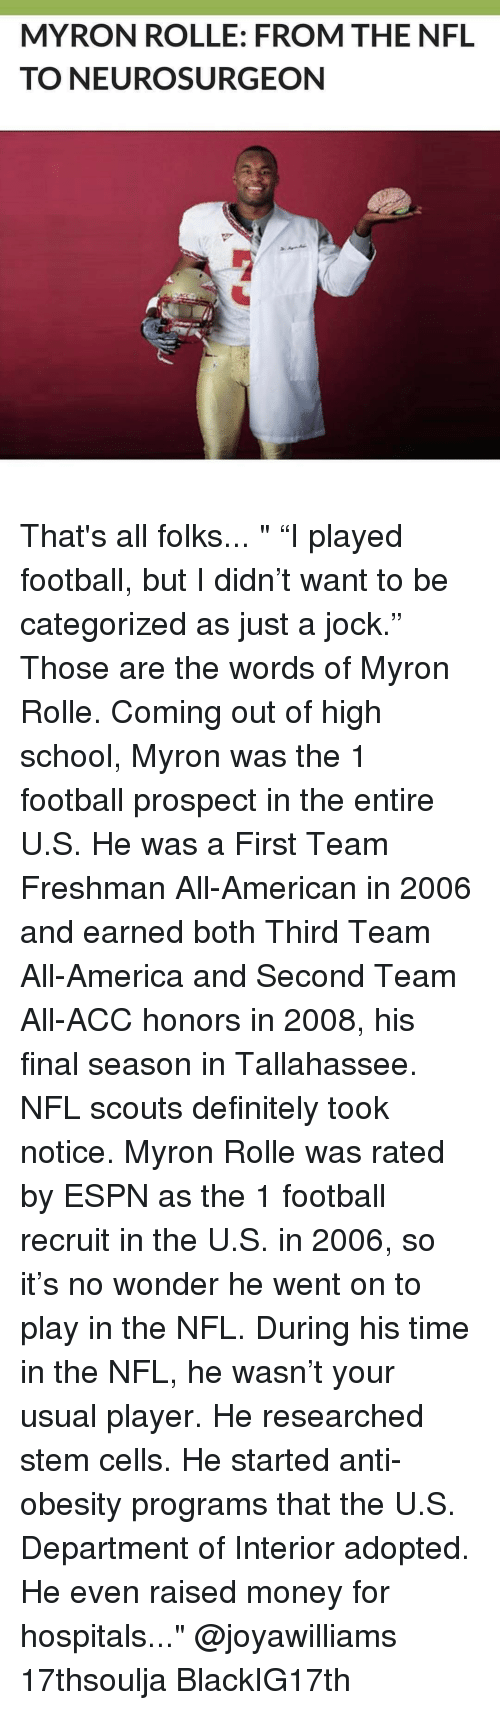 """neuro: MYRON ROLLE: FROM THE NFL  TO NEURO SURGEON That's all folks... """" """"I played football, but I didn't want to be categorized as just a jock."""" Those are the words of Myron Rolle. Coming out of high school, Myron was the 1 football prospect in the entire U.S. He was a First Team Freshman All-American in 2006 and earned both Third Team All-America and Second Team All-ACC honors in 2008, his final season in Tallahassee. NFL scouts definitely took notice. Myron Rolle was rated by ESPN as the 1 football recruit in the U.S. in 2006, so it's no wonder he went on to play in the NFL. During his time in the NFL, he wasn't your usual player. He researched stem cells. He started anti-obesity programs that the U.S. Department of Interior adopted. He even raised money for hospitals..."""" @joyawilliams 17thsoulja BlackIG17th"""